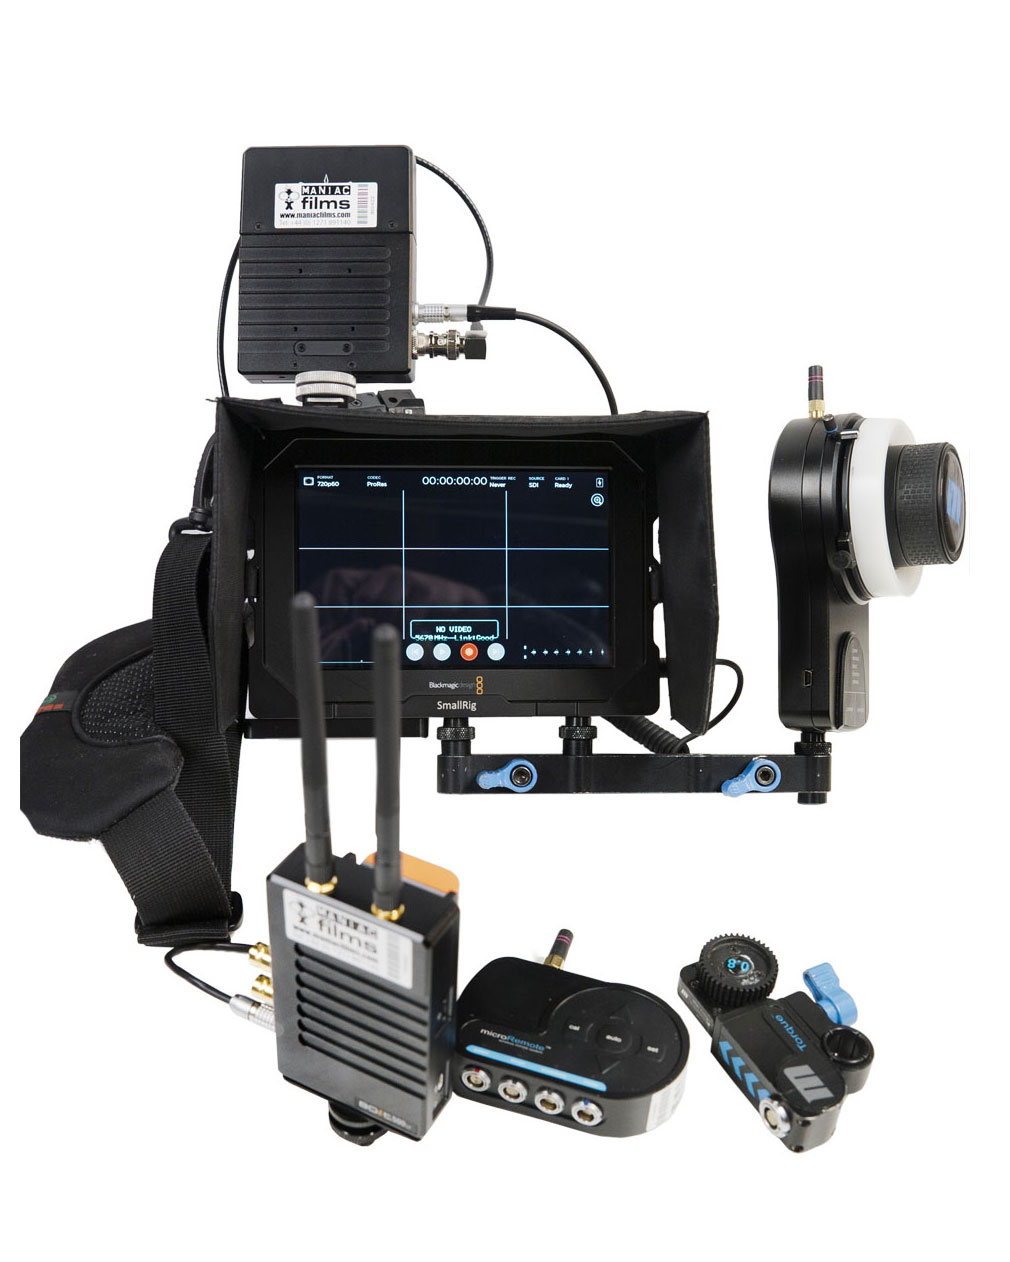 Image of the Wireless Follow Focus / Focus Puller Kit SDI Version2